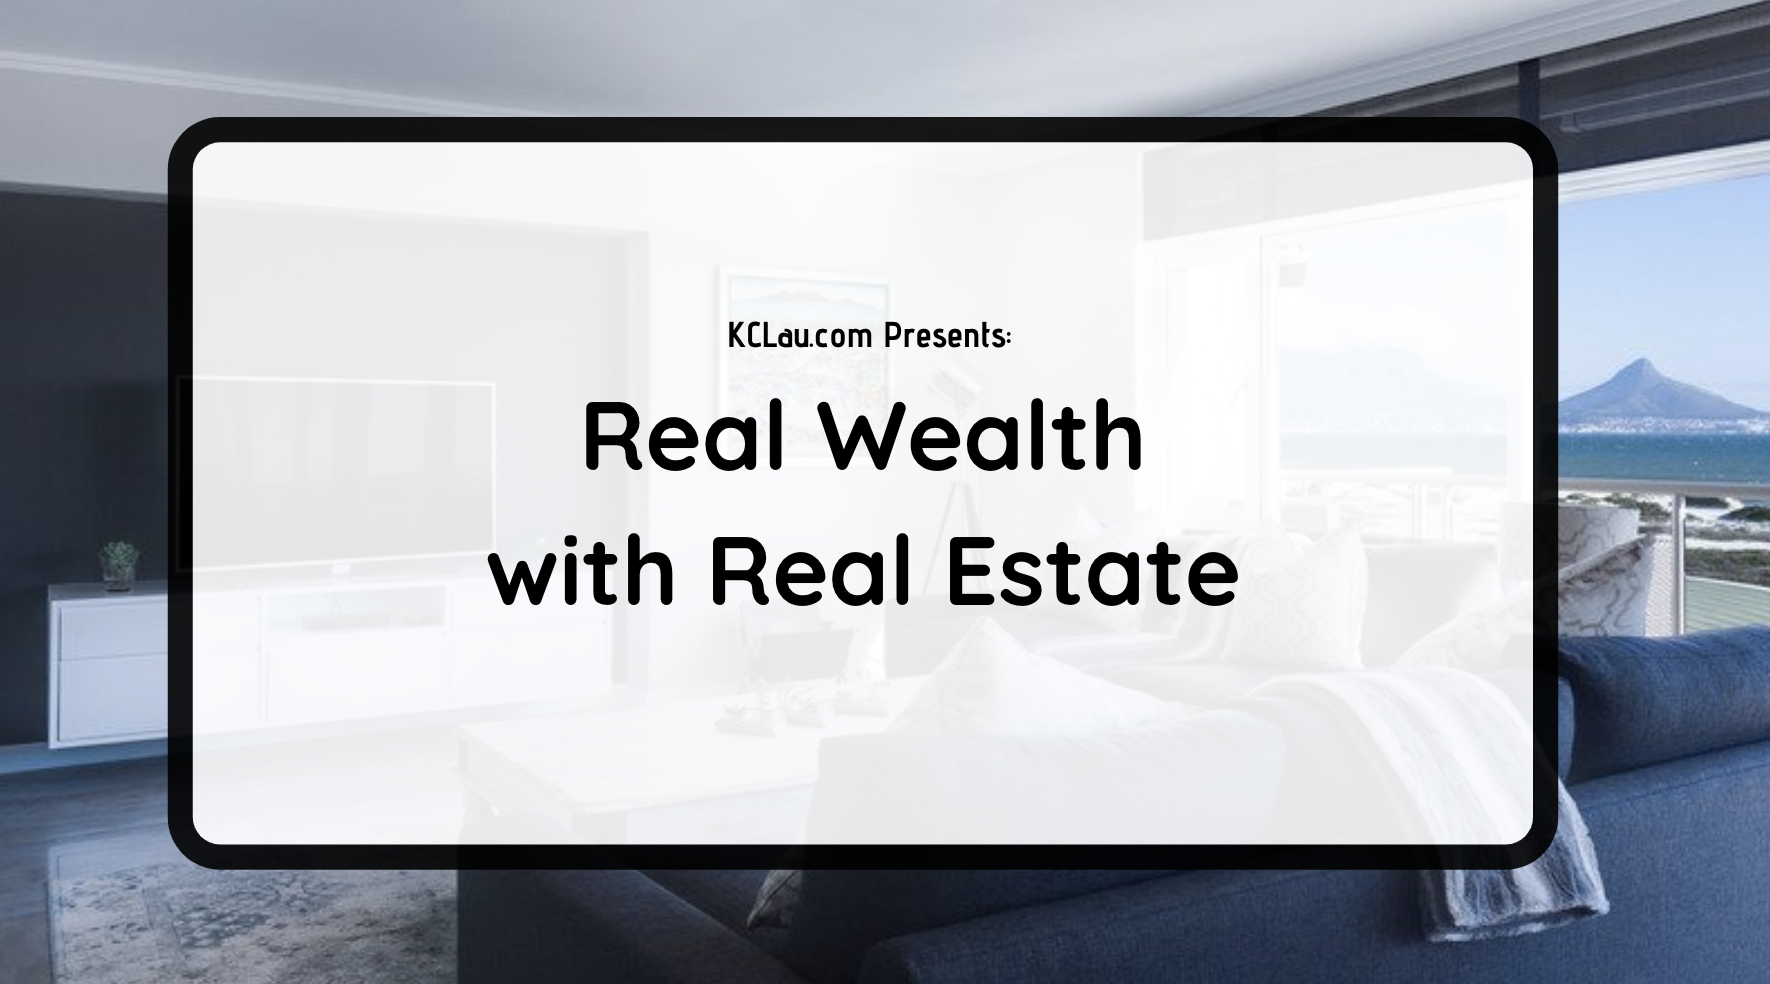 Real Wealth in Real Estate